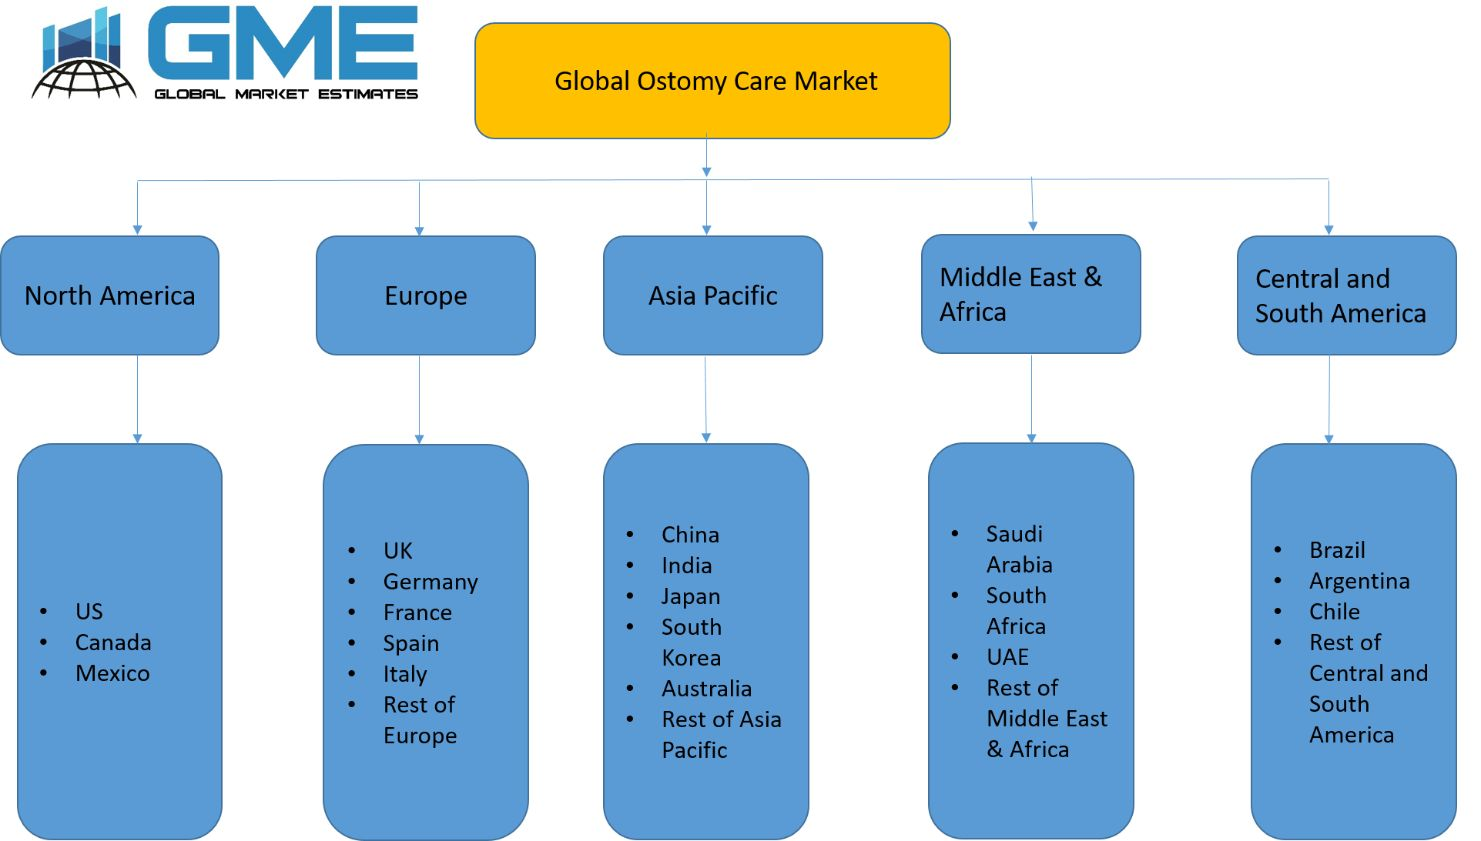 Global Ostomy Care Market - Regional Analysis